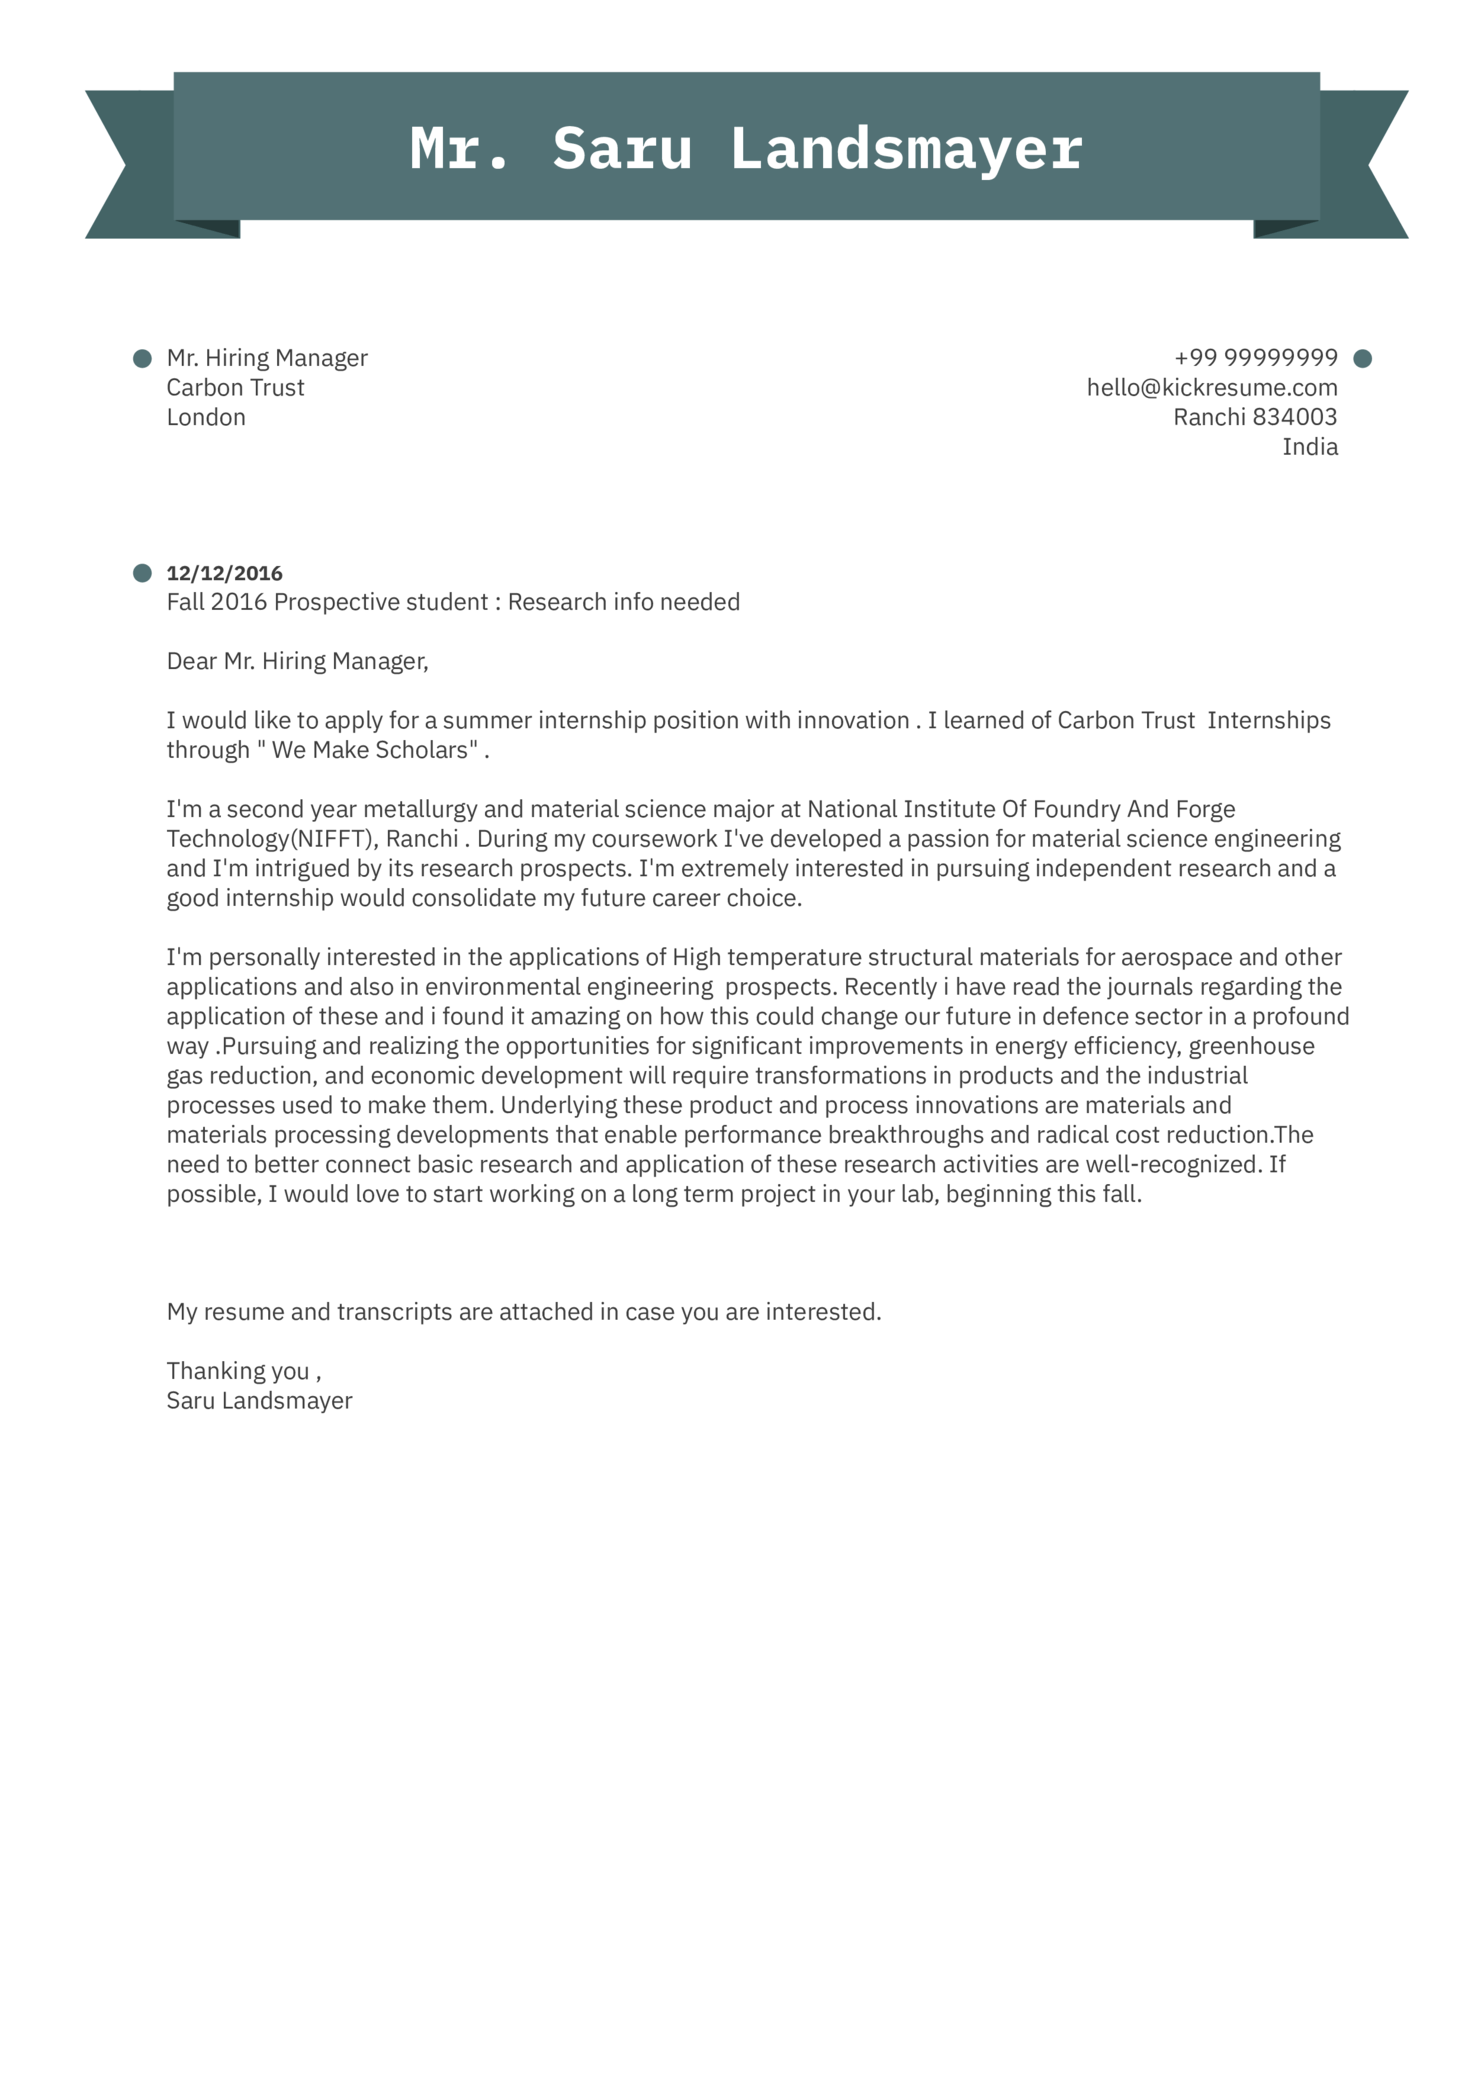 letter of support for research project example